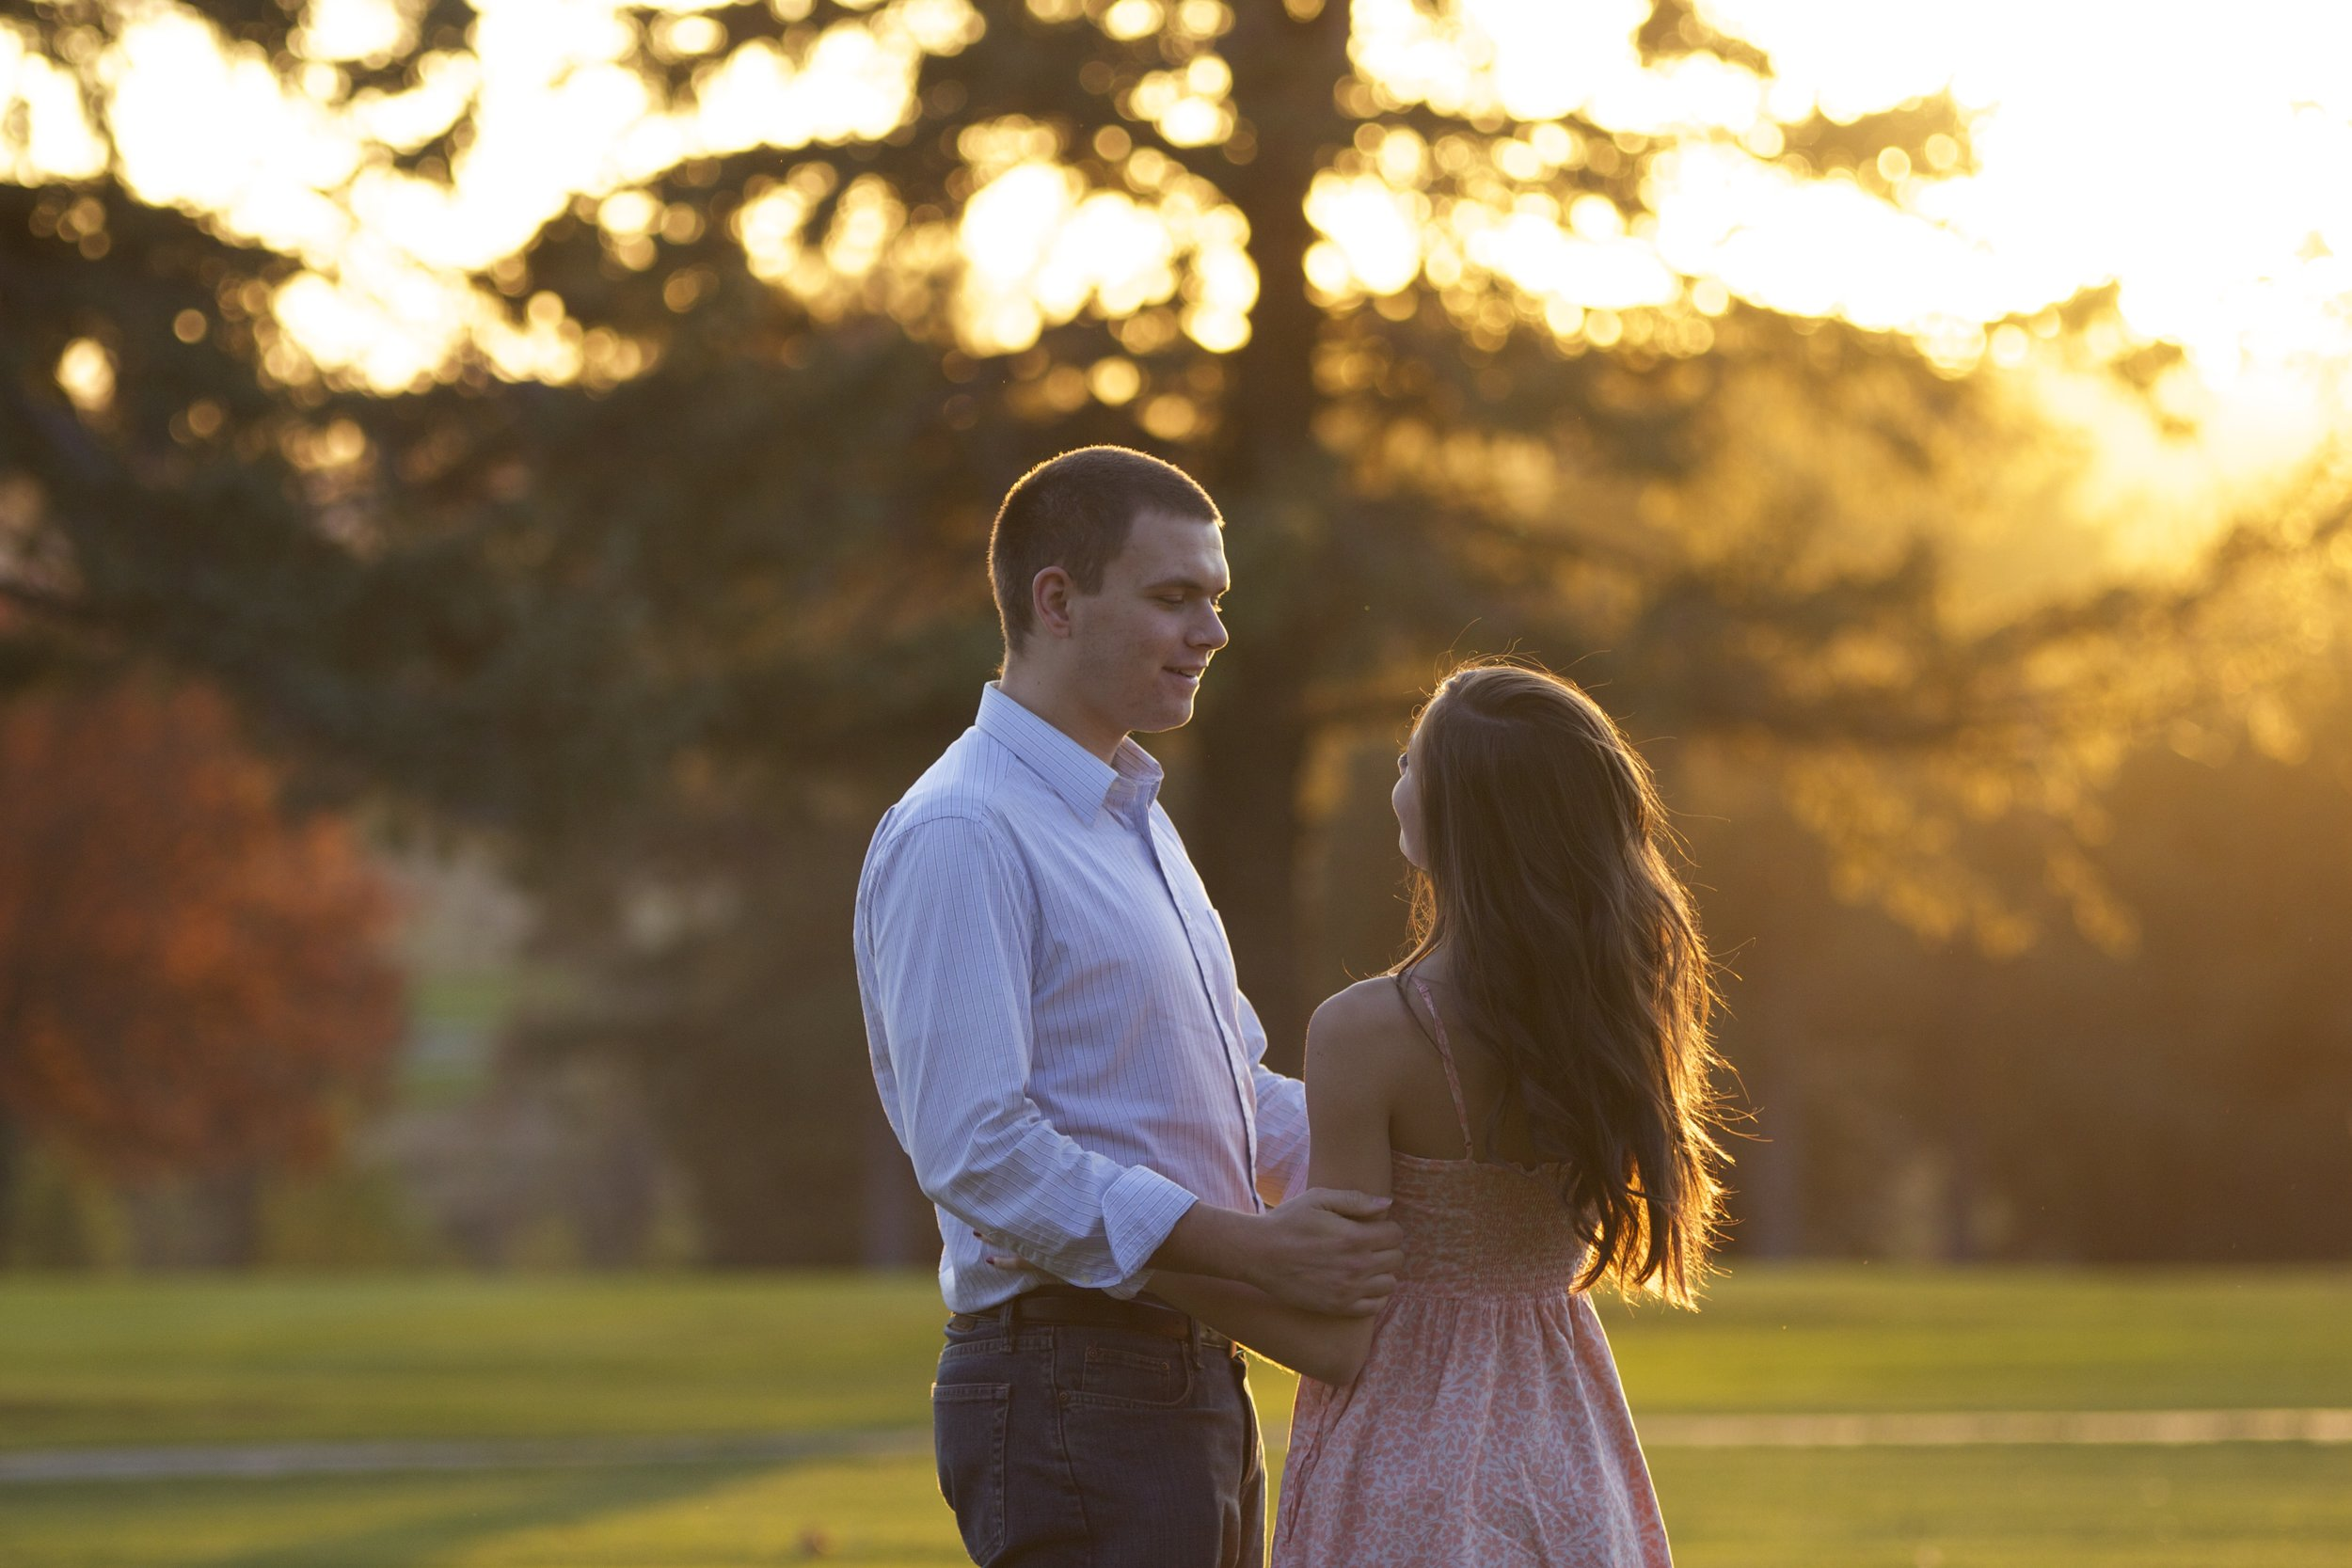 Caleb and Brittany's 3 Year Anniversary | The Kardia Blog